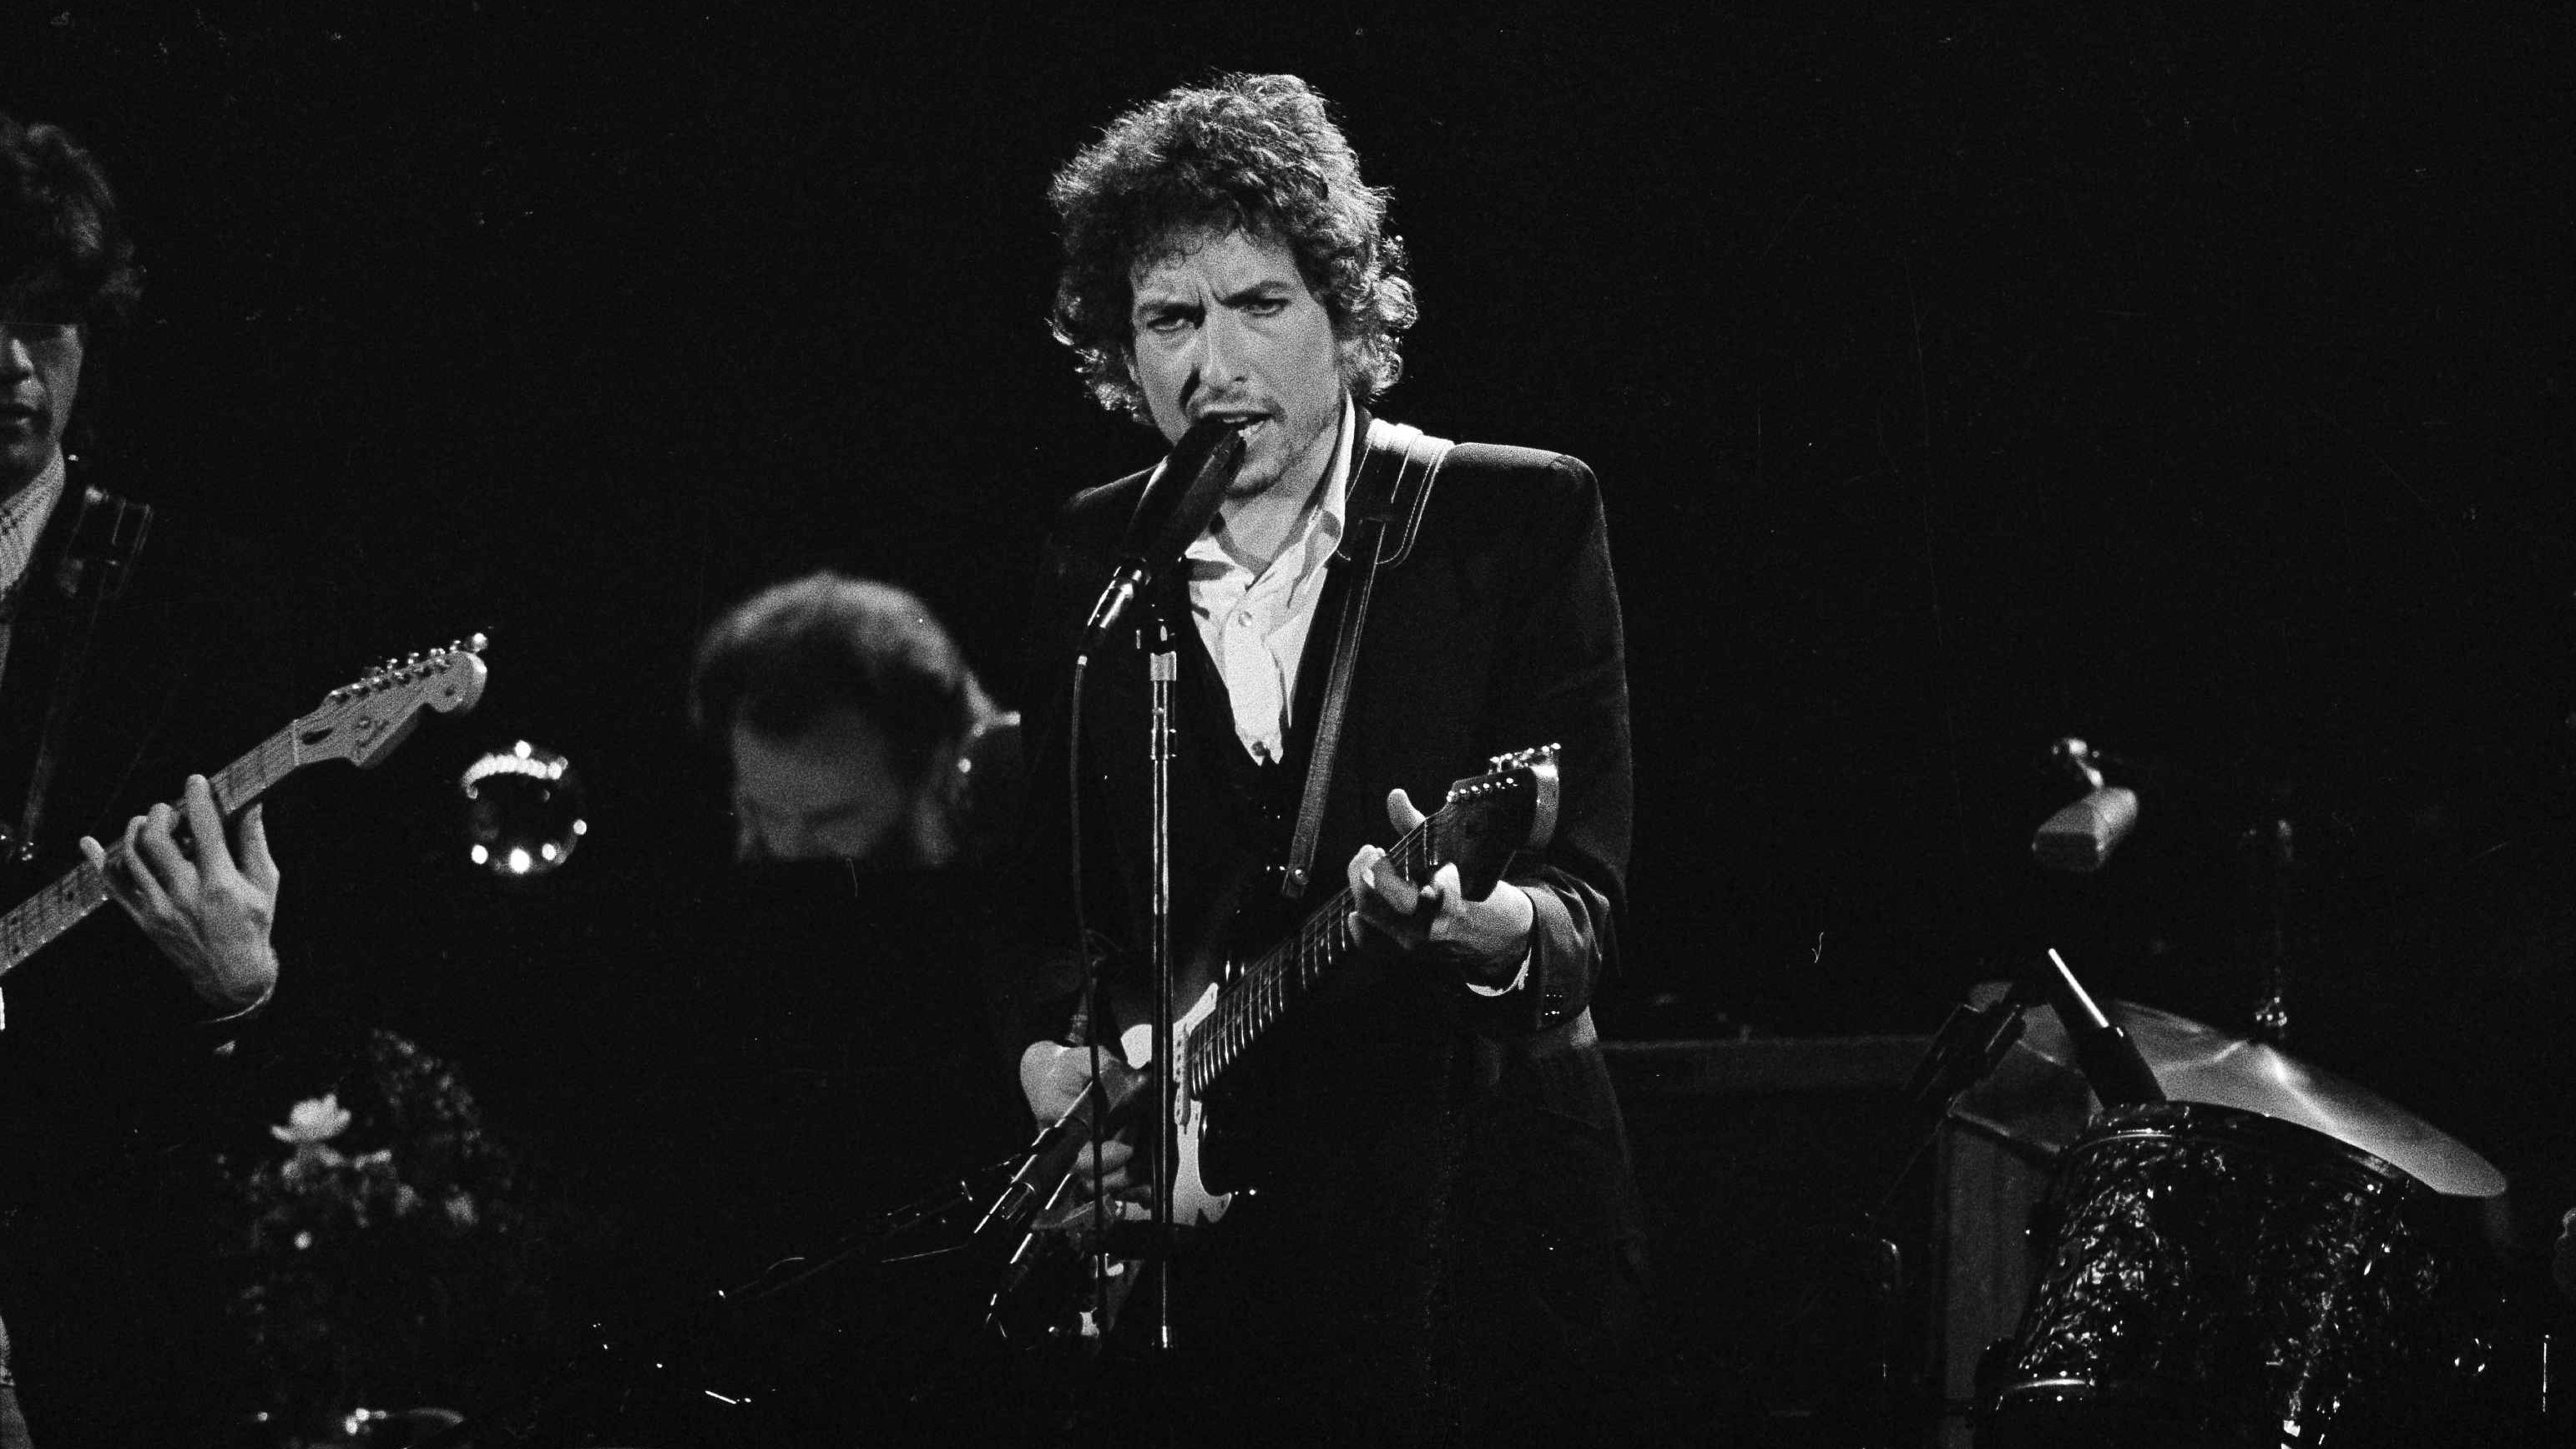 Musician Bob Dylan belts out a tune as members of The Band, Robbie Robertson, partially hidden left, and Garth Hudson, background center, accompany him during a concert at the Forum in Los Angeles, Calif., Feb. 15, 1974. The concert concluded a 21-city tour that began in Chicago, Ill., Jan. 3. (AP Photo/Jeff Robbins)